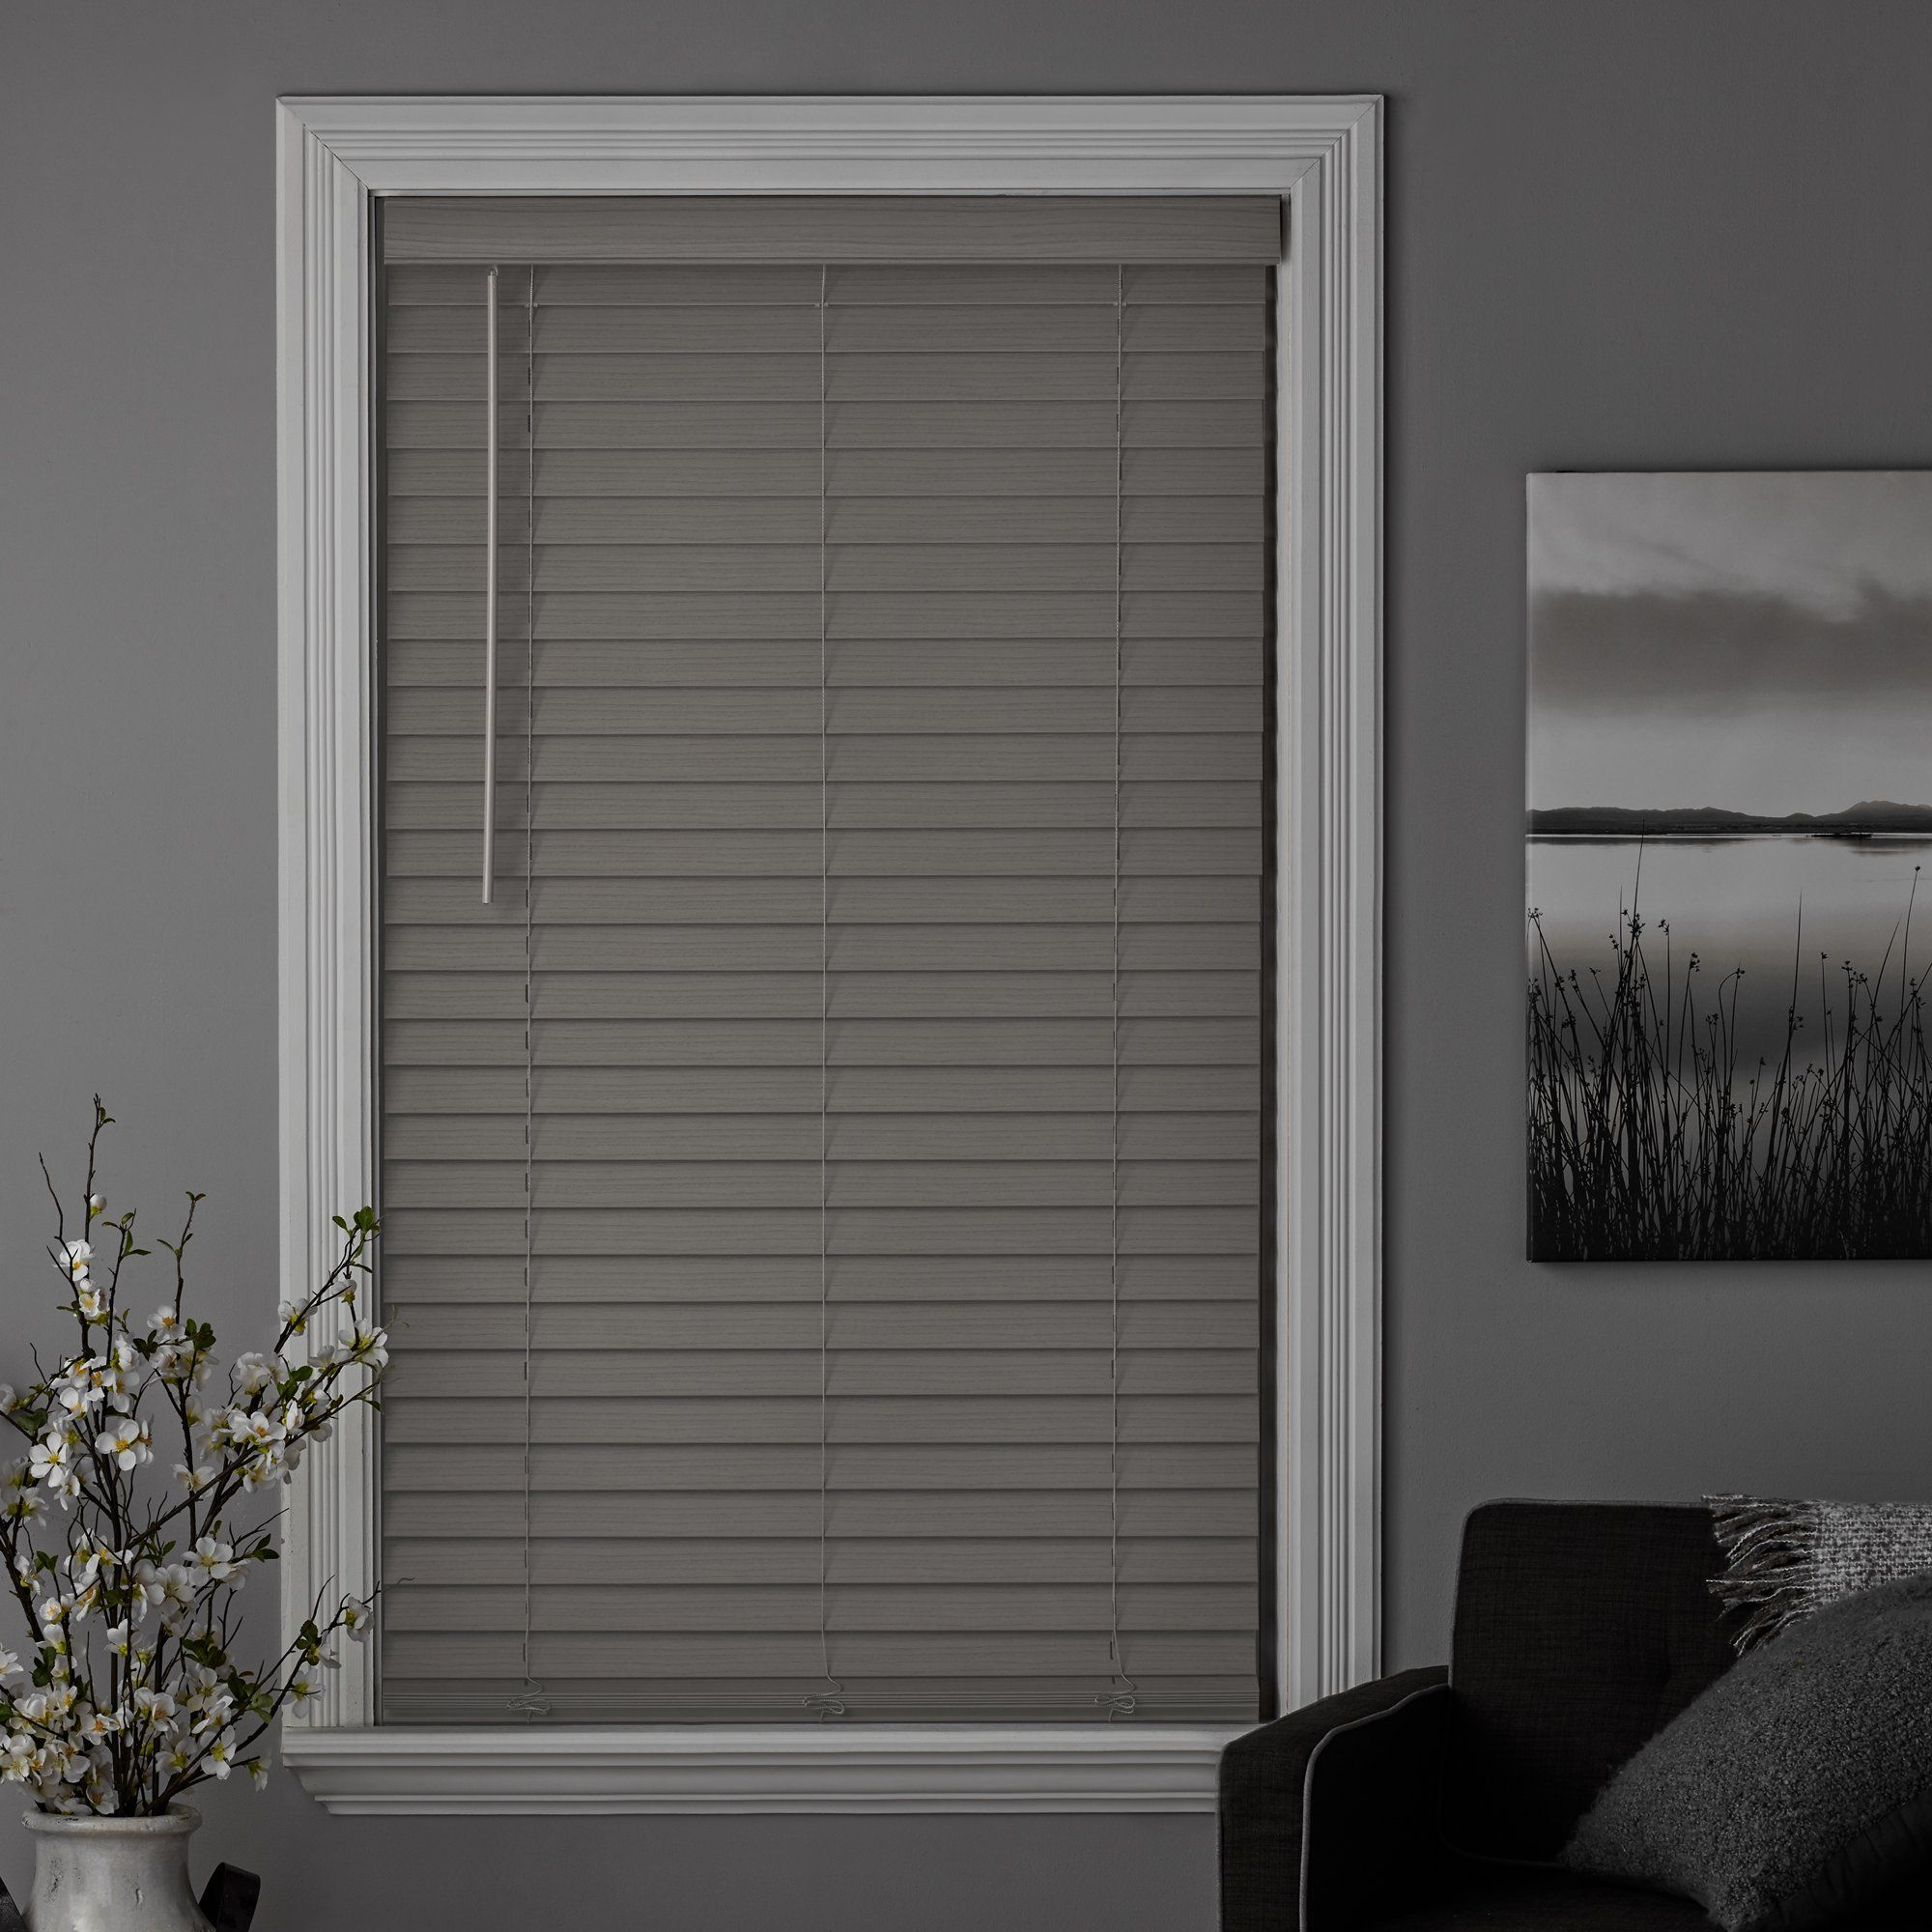 Better Homes Gardens 2 Inch Cordless Faux Wood Blinds Rustic Gray 36 X 64 Walmart Com In 2021 Wood Blinds Faux Wood Blinds Blinds